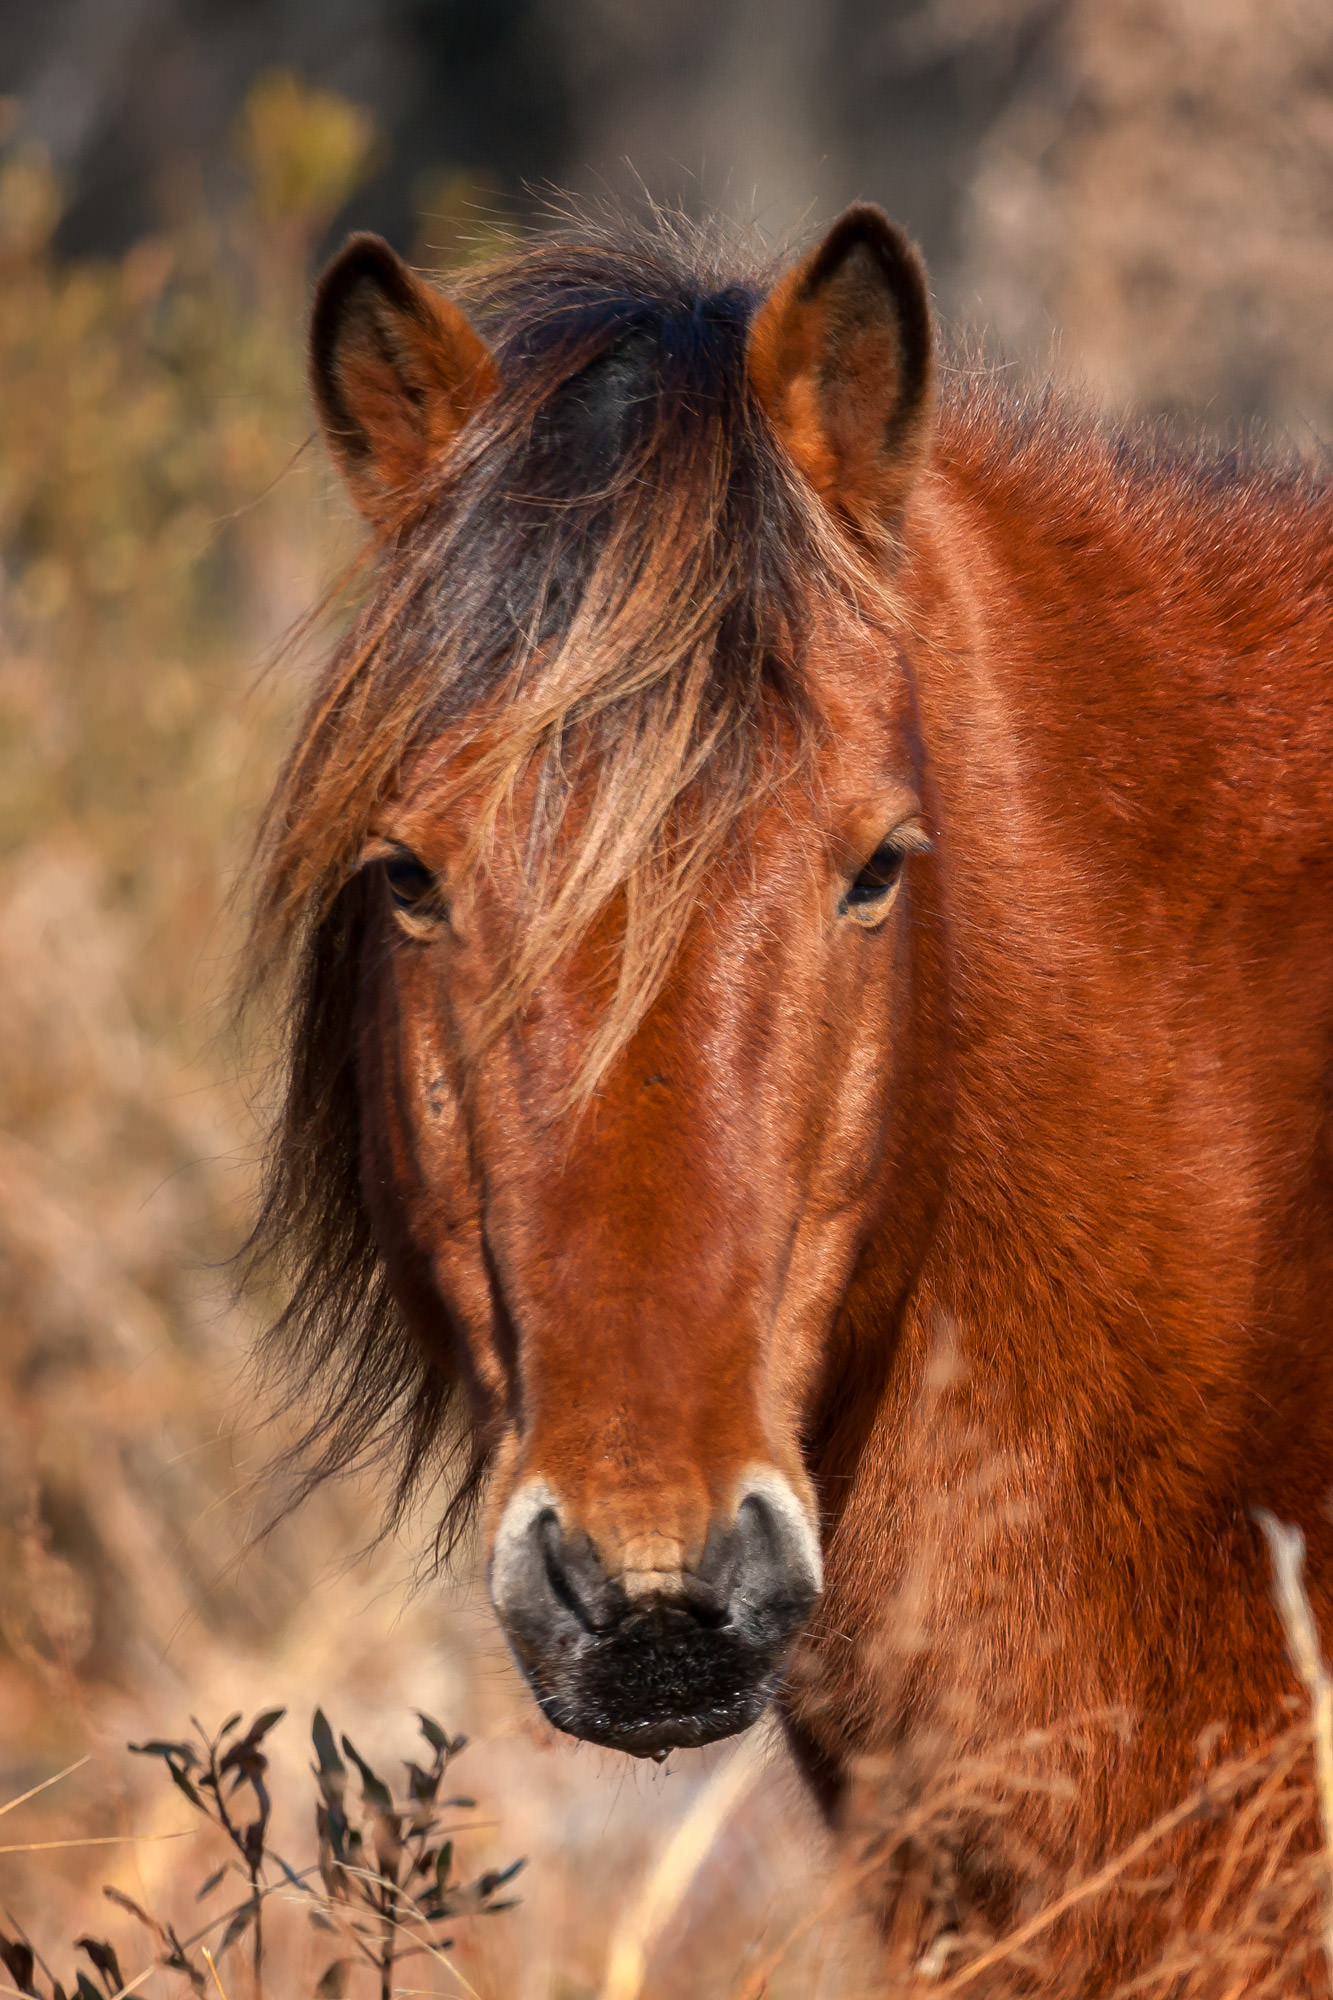 Wild Horse Fine Art Photography A Limited Edition photograph of a Wild Horse having a look of confidence at Chincoteague NWR...